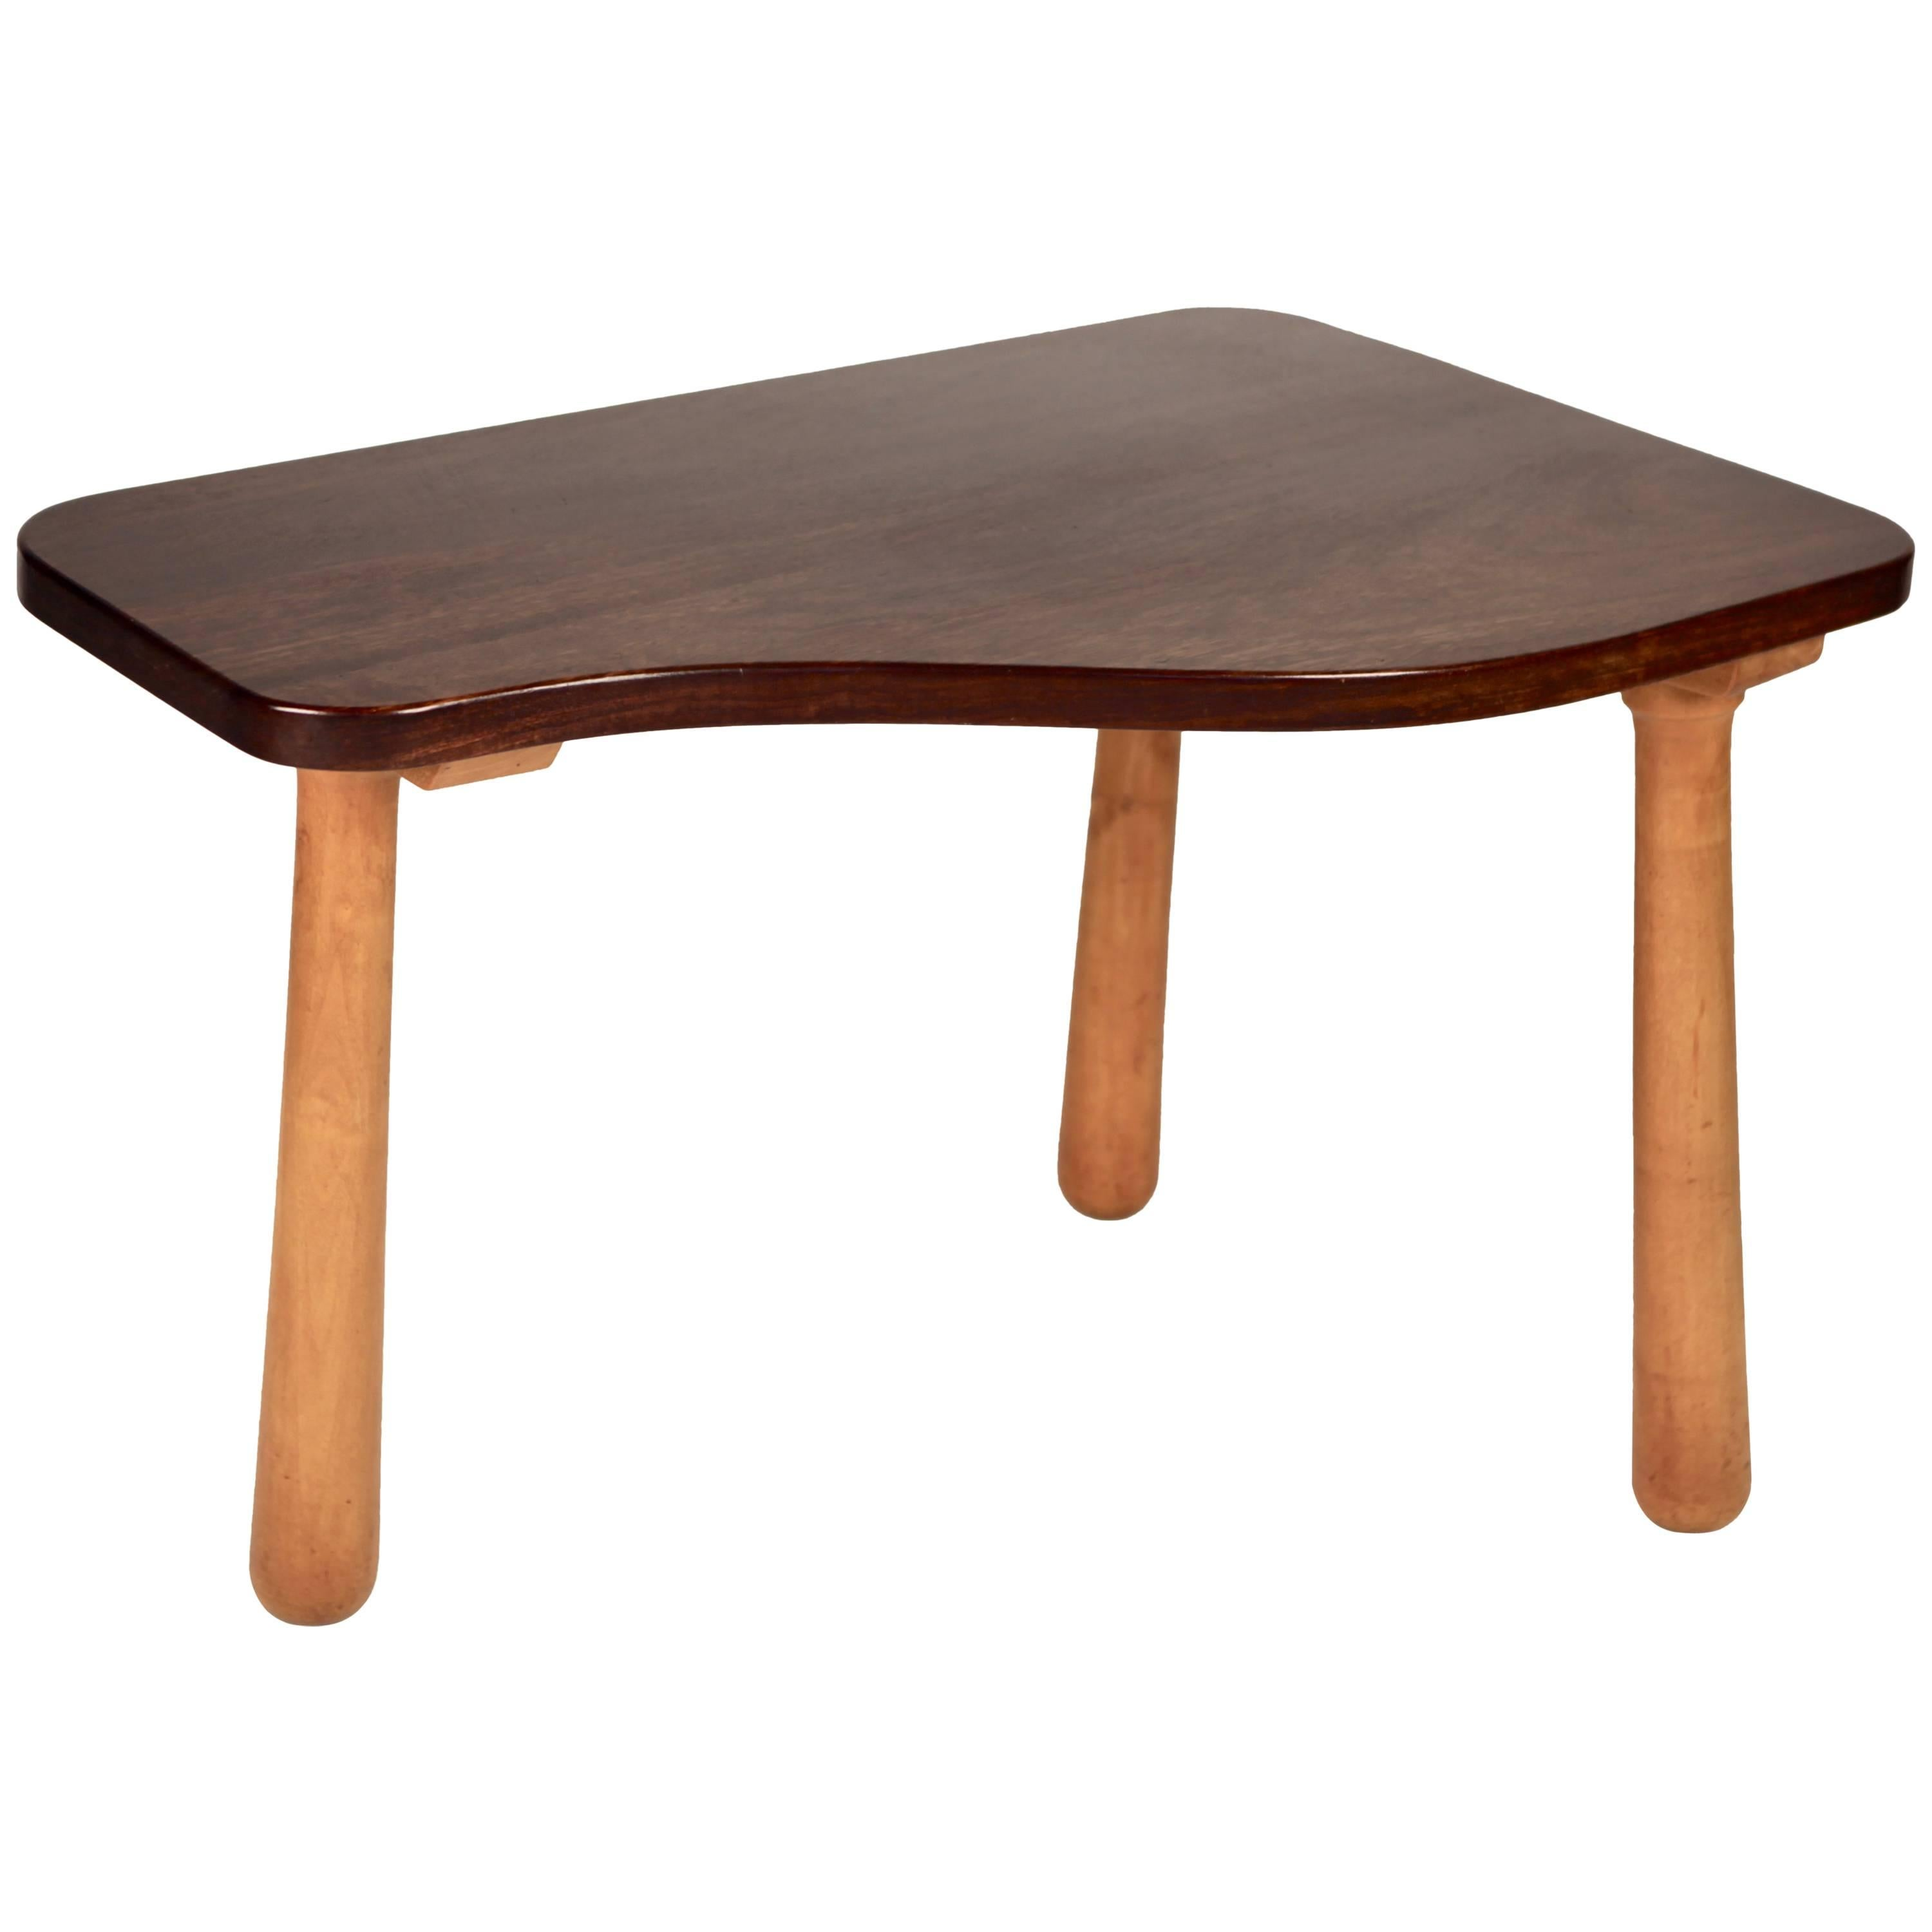 Solid Cuban Mahogany Occasional Table, Sweden, 1940s